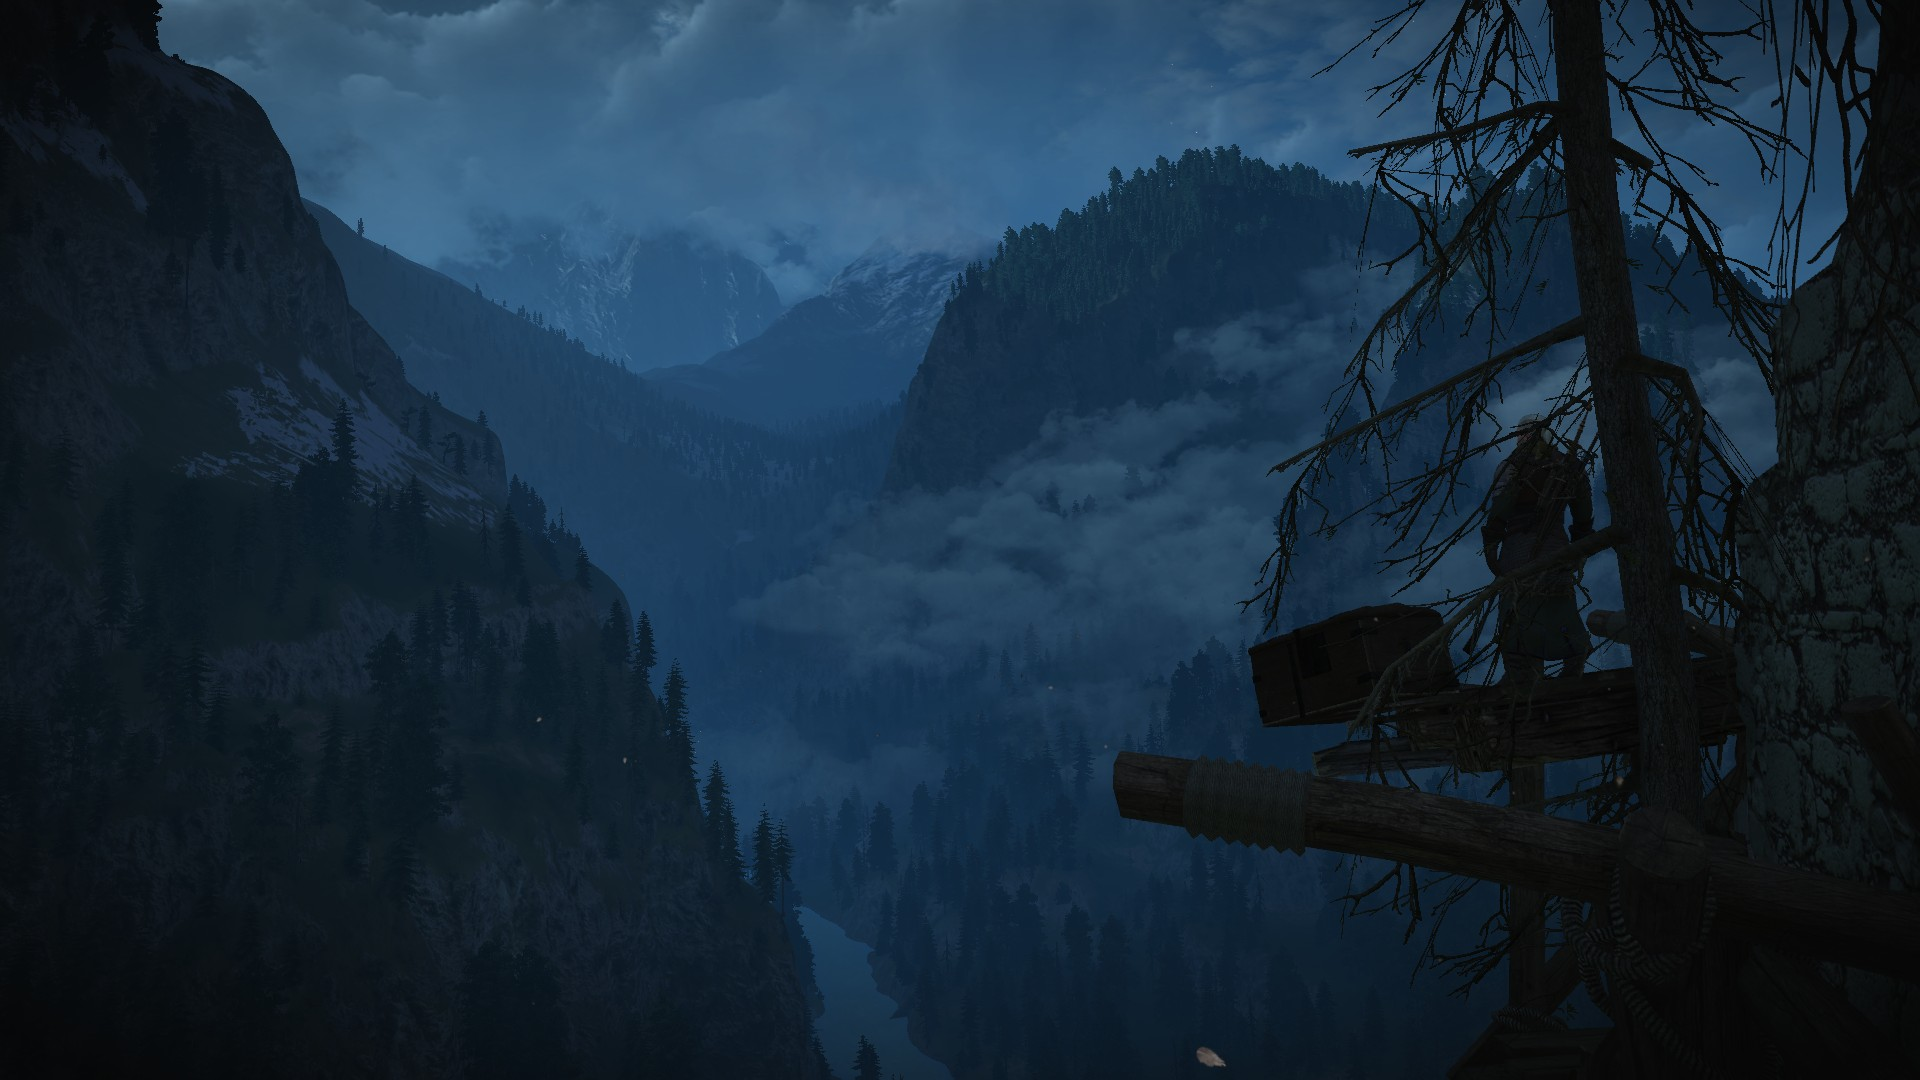 The Witcher 3 Screenshot 2019.02.09 - 23.40.29.57.jpg - Witcher 3: Wild Hunt, the